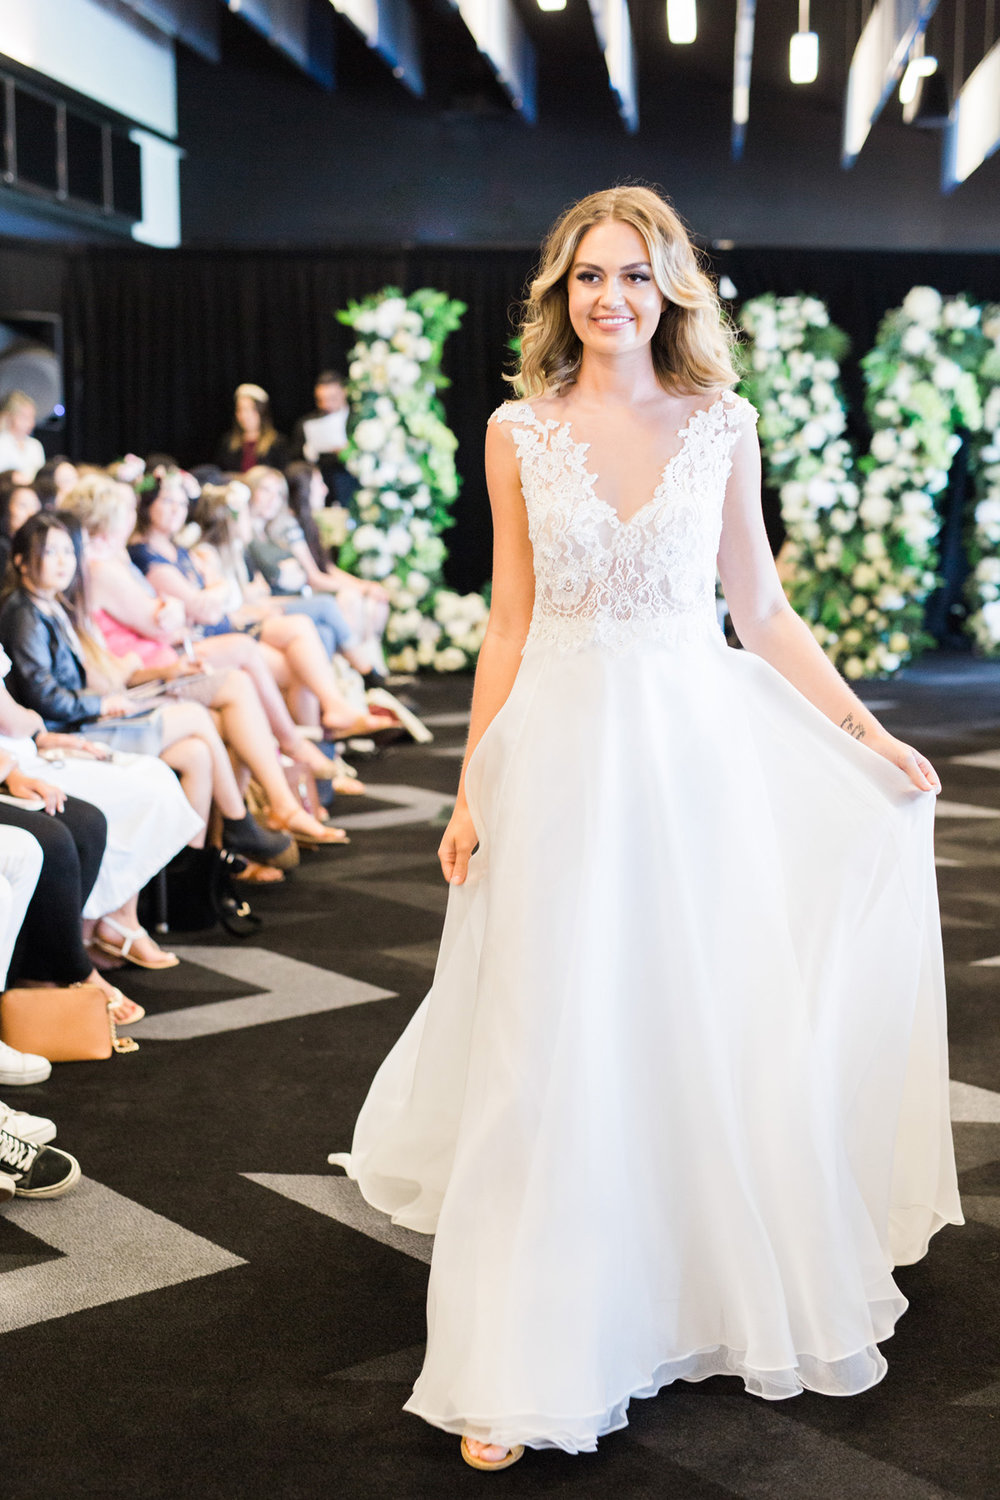 Love-Wedding-Festival-Sydney-Wedding-Gown-Angela-Osagie-3.jpg